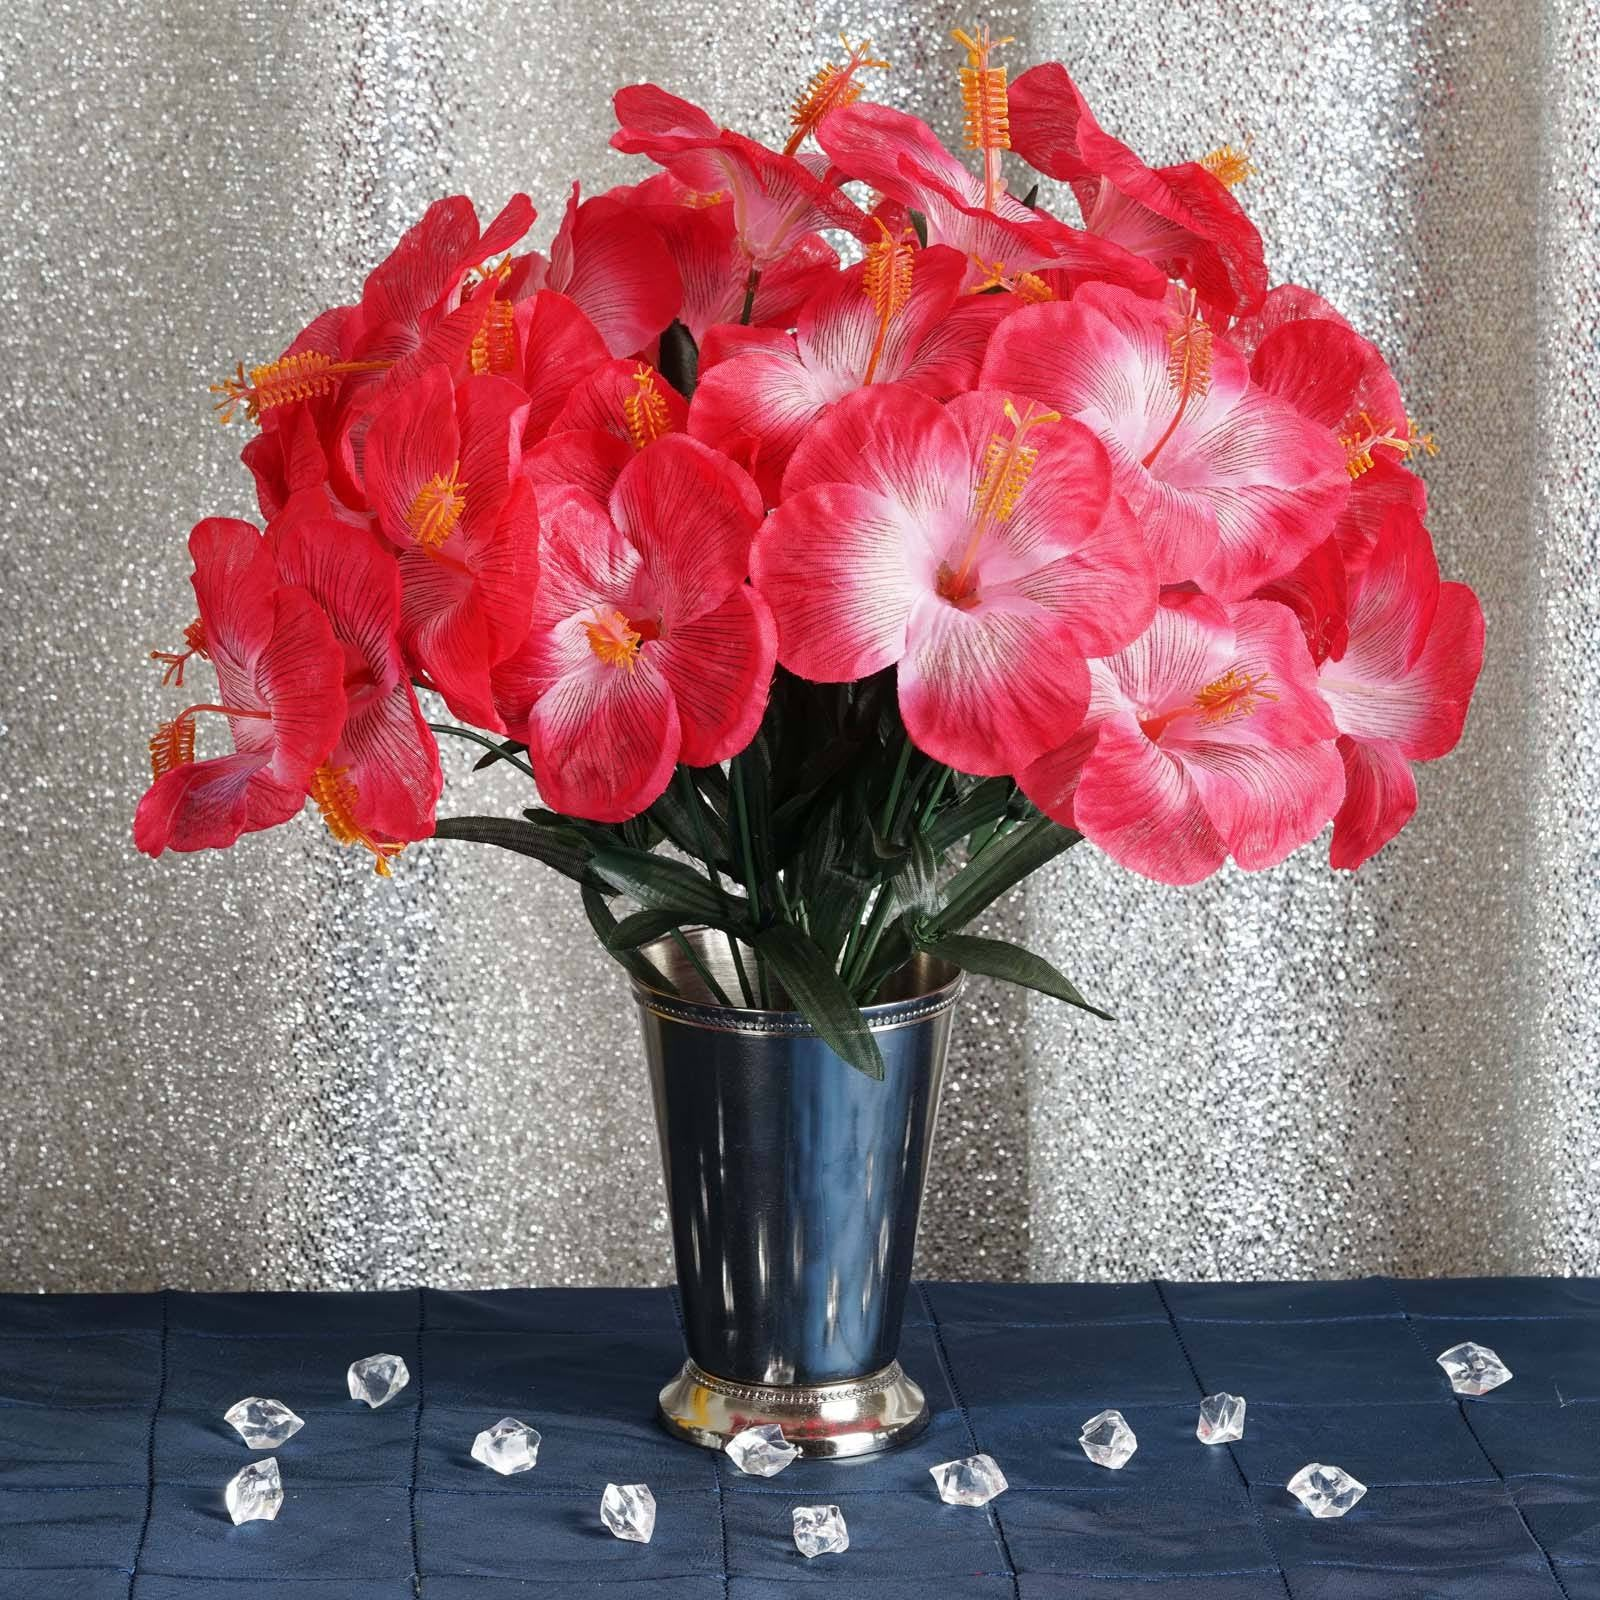 12 Bush 60 Pcs Fushia Artificial Silk Hibiscus Flowers Wedding Vase ...